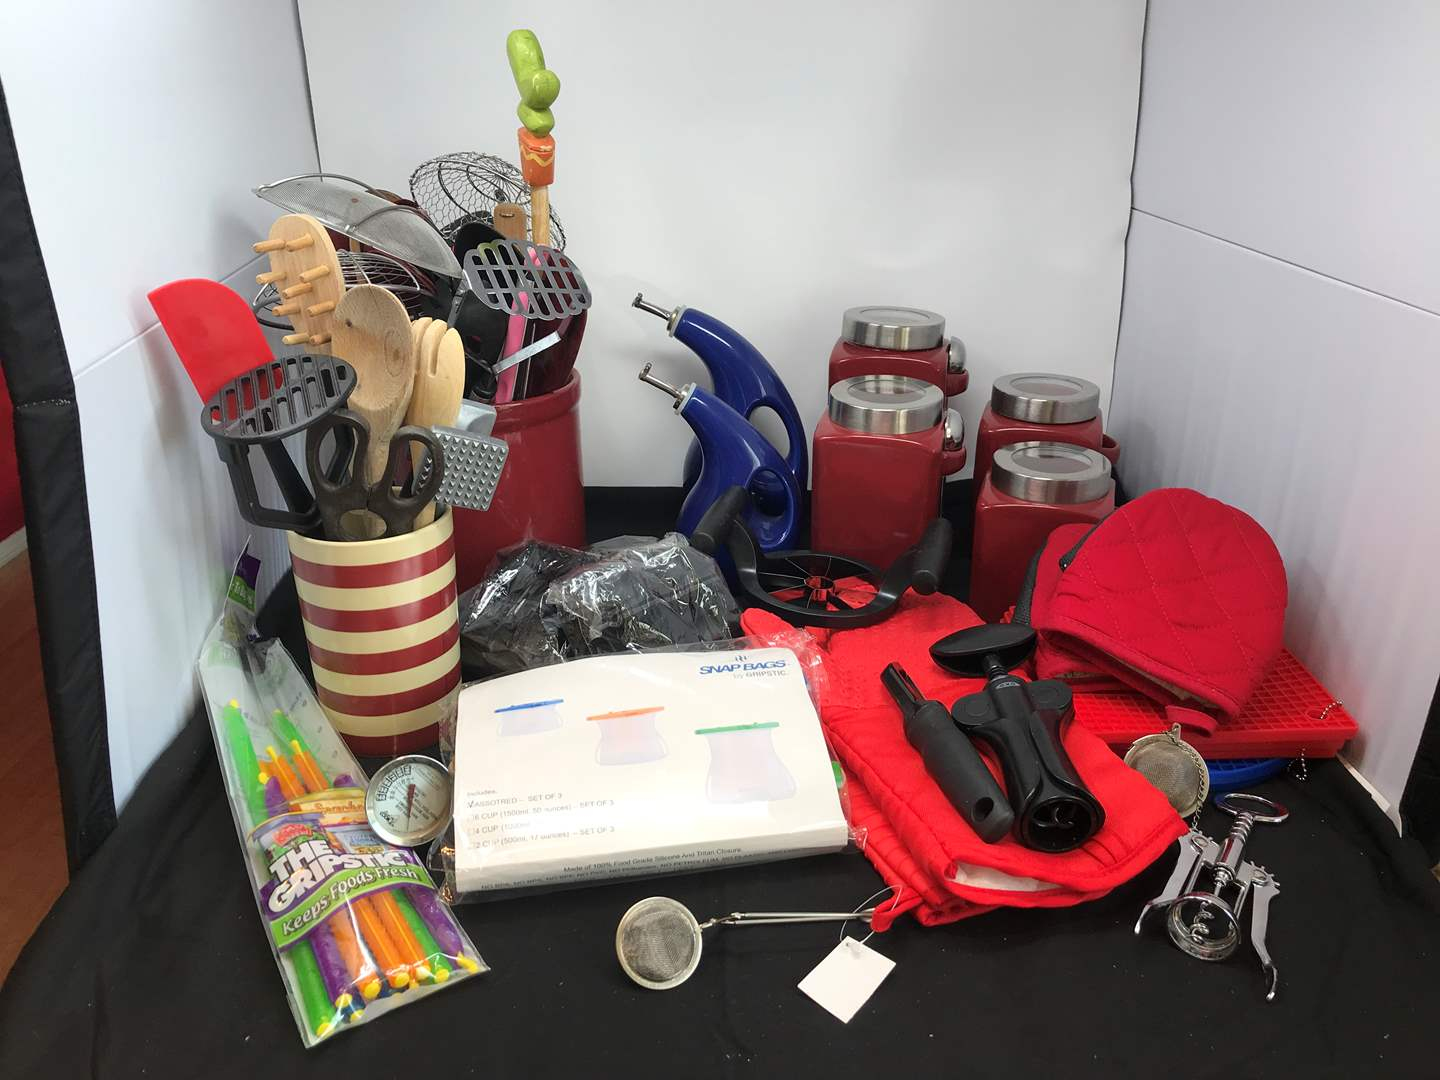 Lot # 72 - Kitchen Utensils, Canisters, Oven Mitts & More (main image)